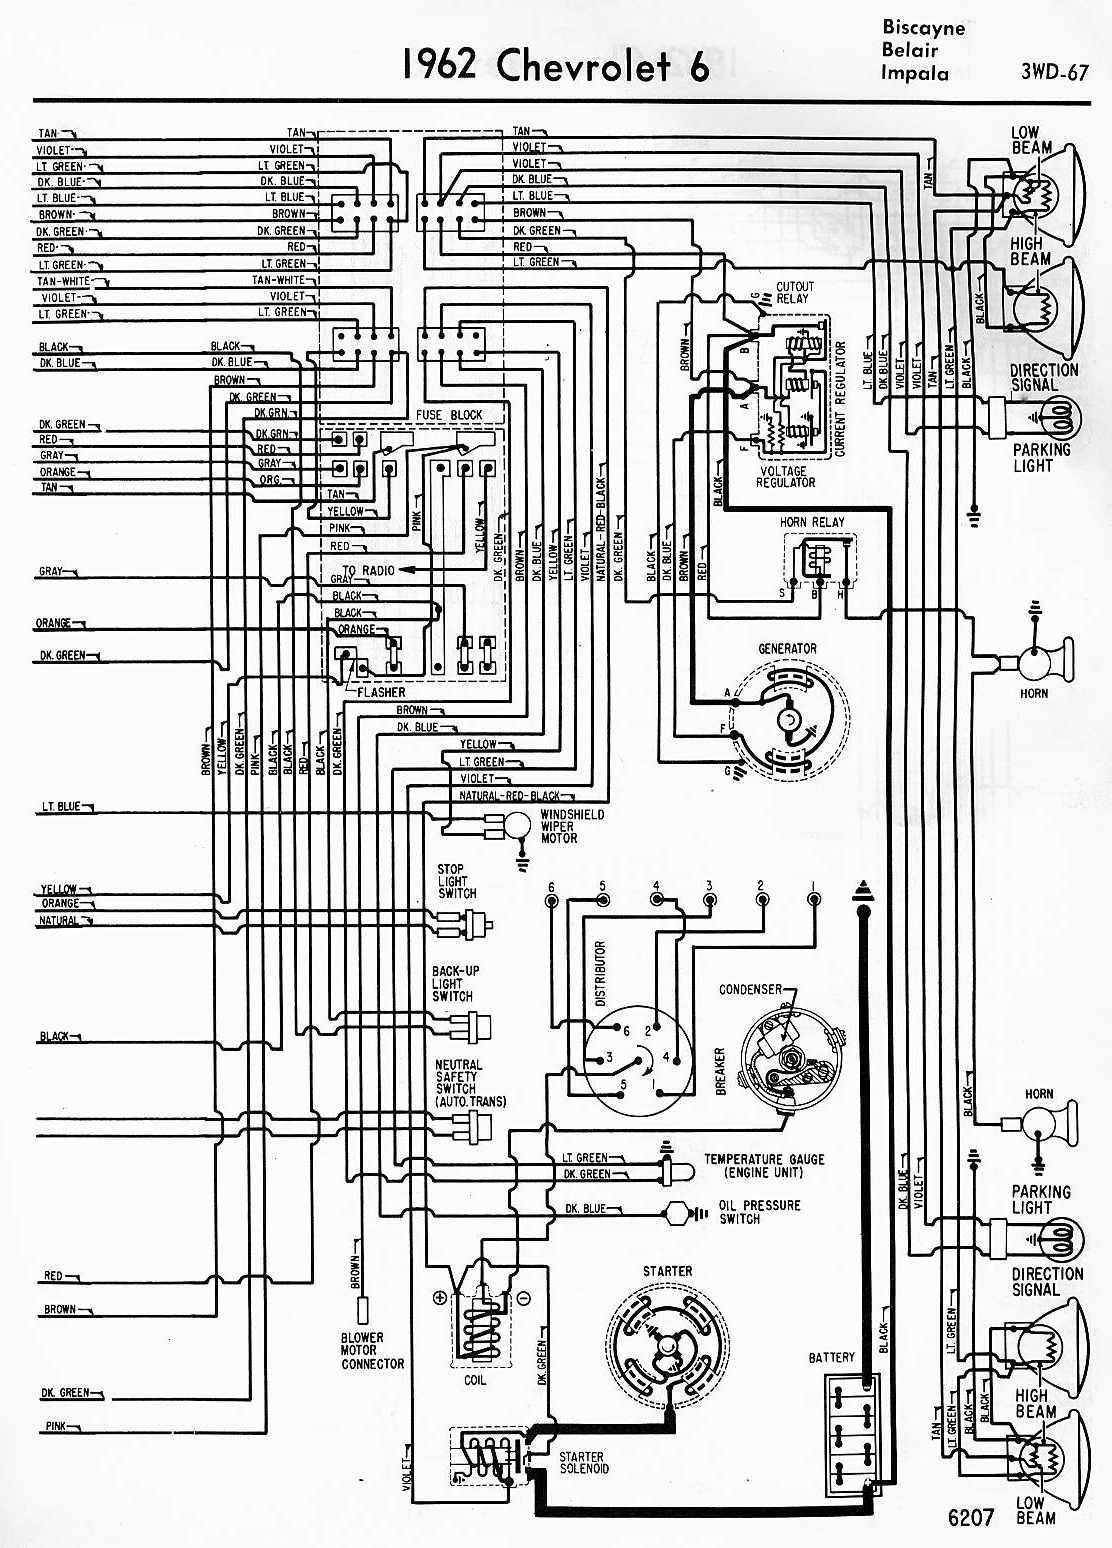 hight resolution of 64 gto wiper motor wiring diagram simple wiring schema 1968 camaro wiring diagram 64 gto wiper motor wiring diagram